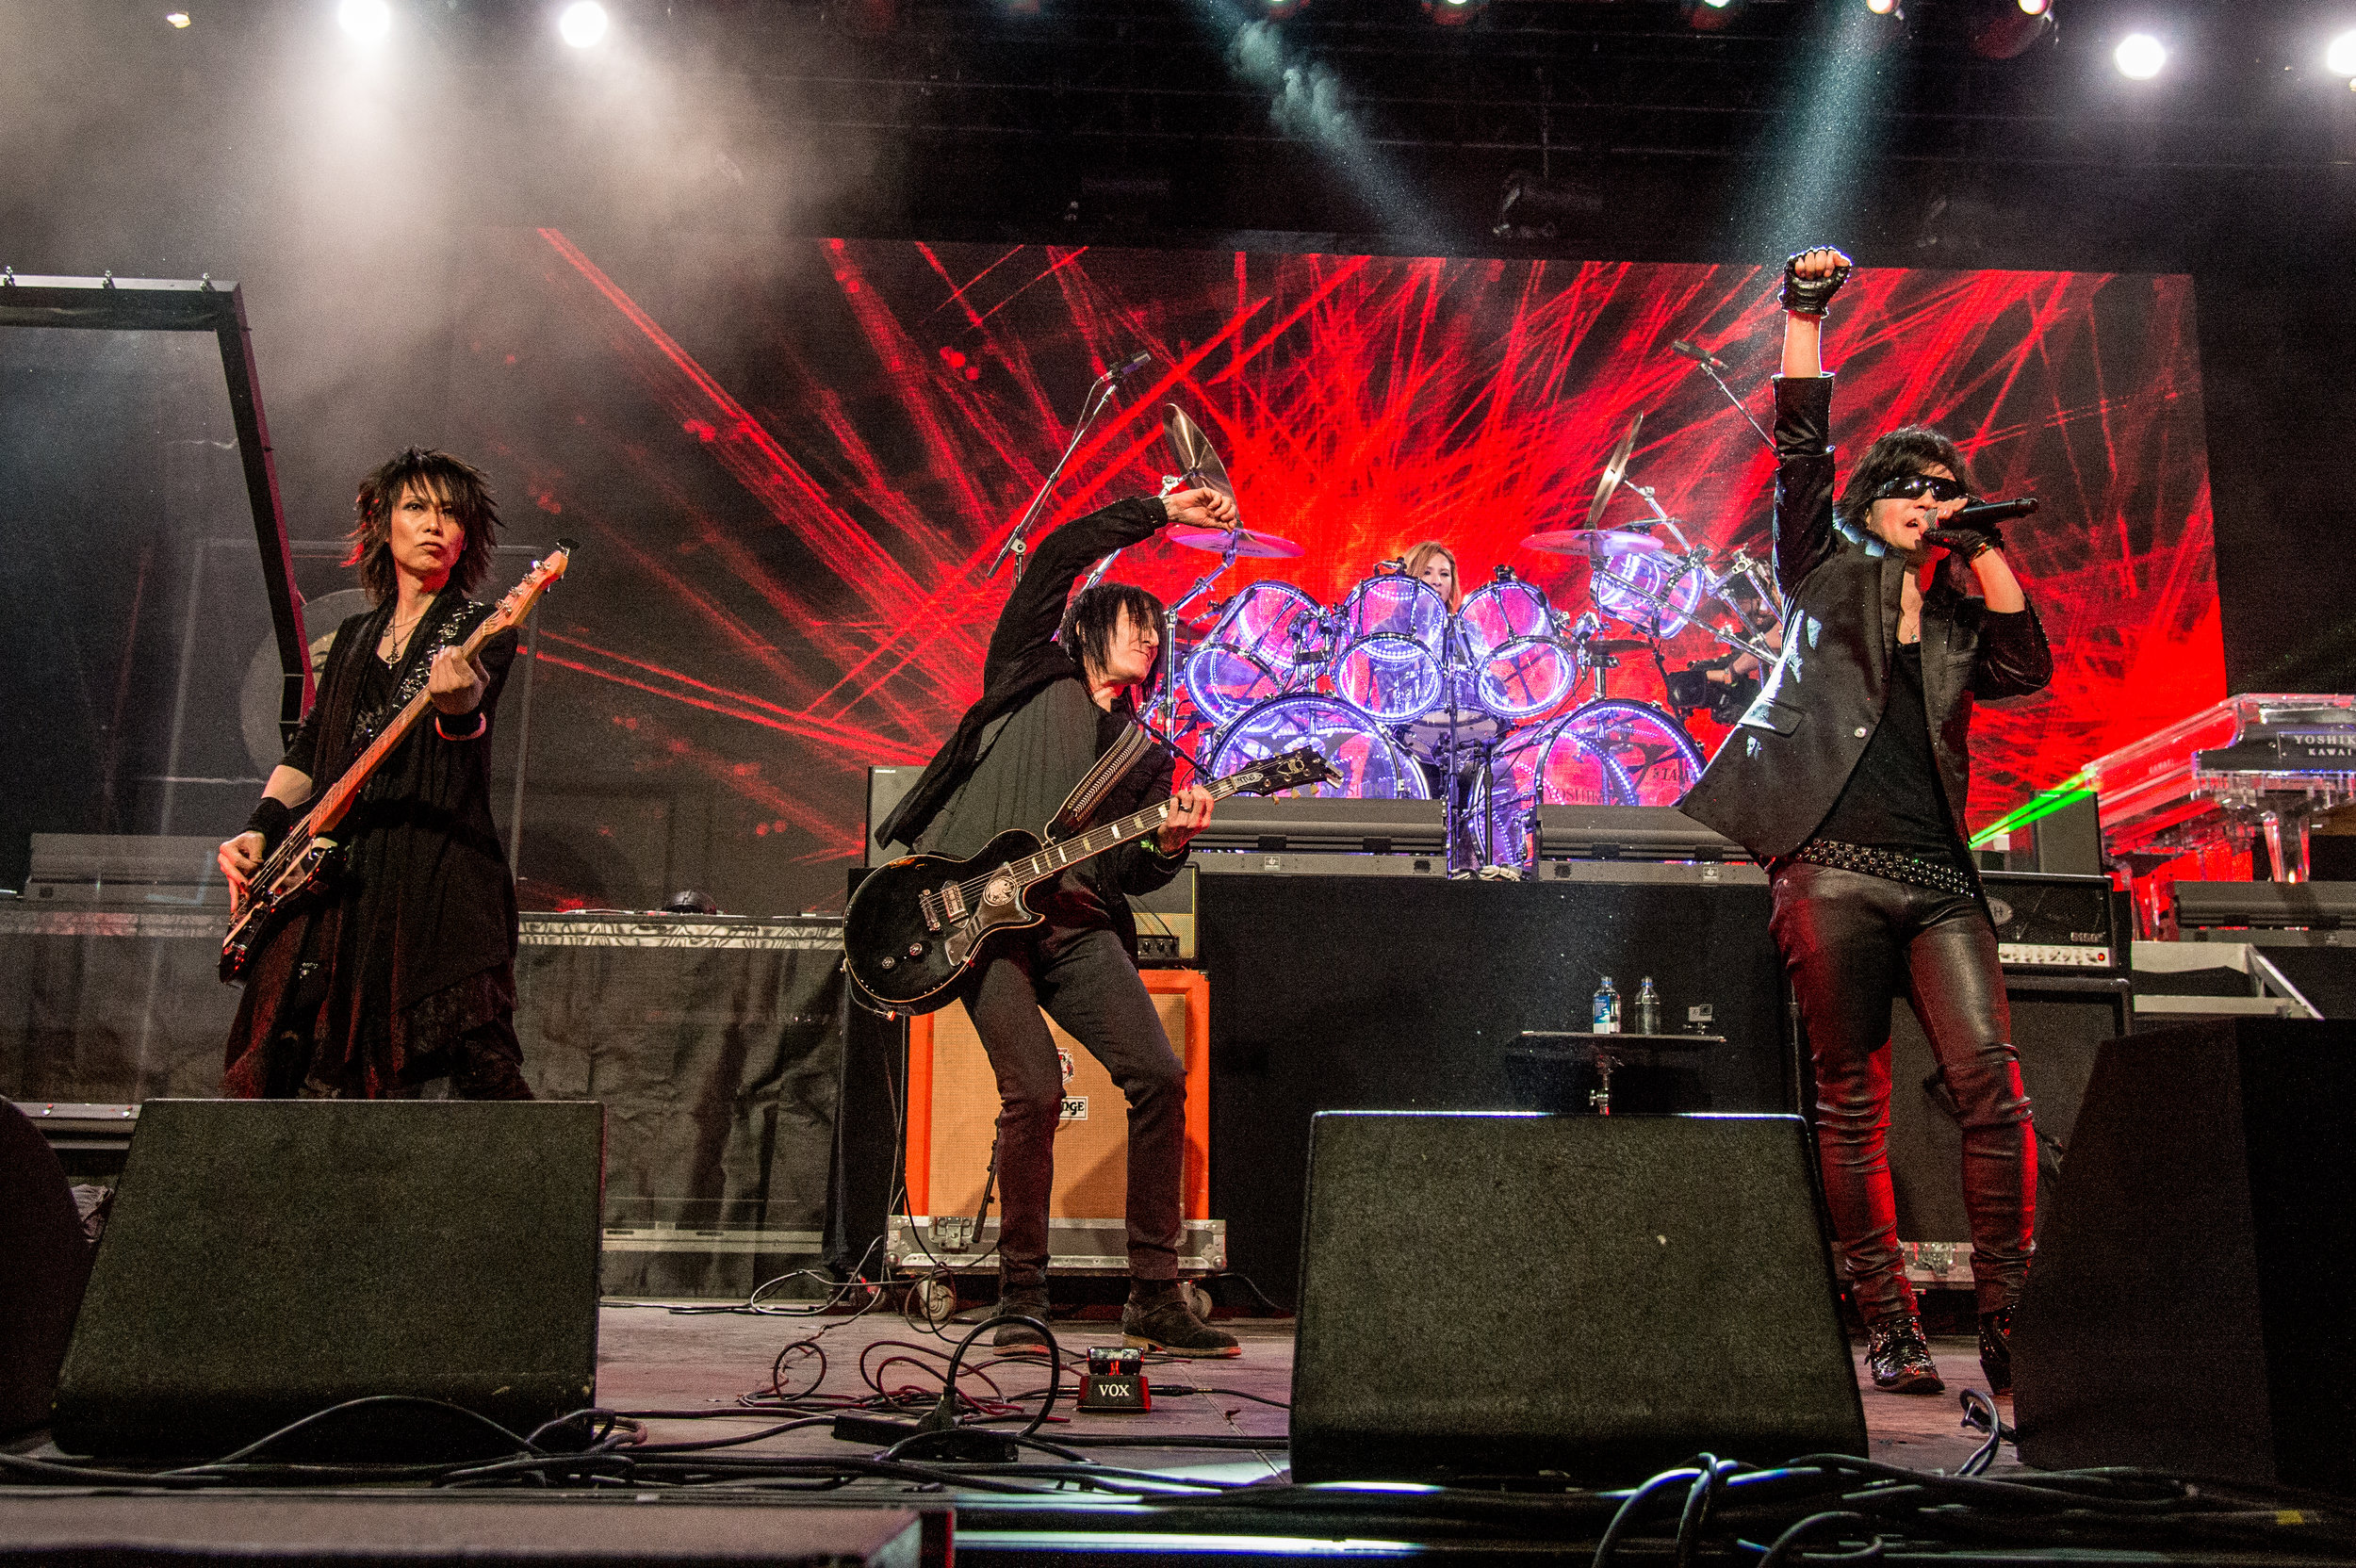 Photo L-R: Heath of X Japan, Richard Fortus (Guns N' Roses) and Toshi of X Japan perform at Coachella - Photo courtesy of Prime PR Group, INC